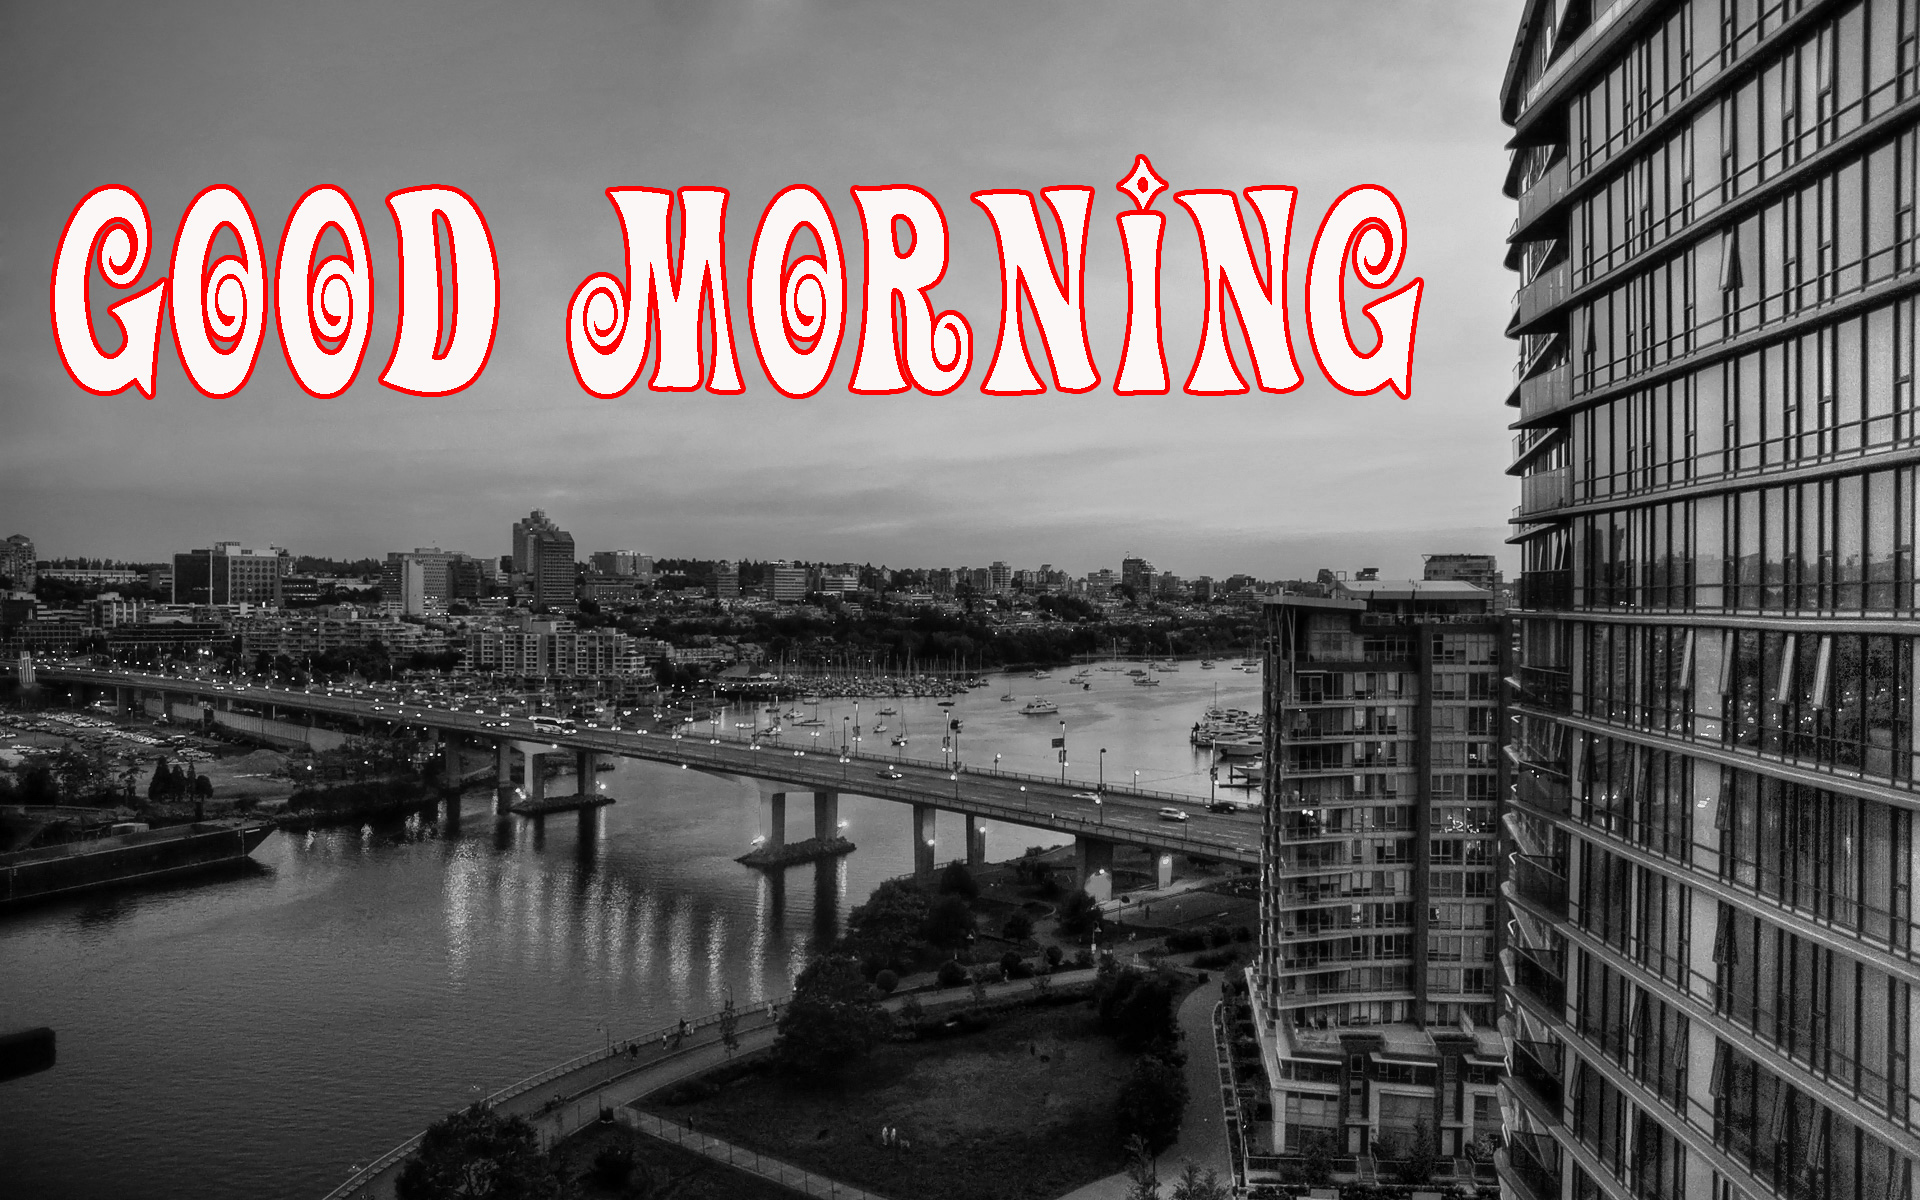 GOOD MORNING IMAGE PHOTO PICTURES PICS DOWNLOAD